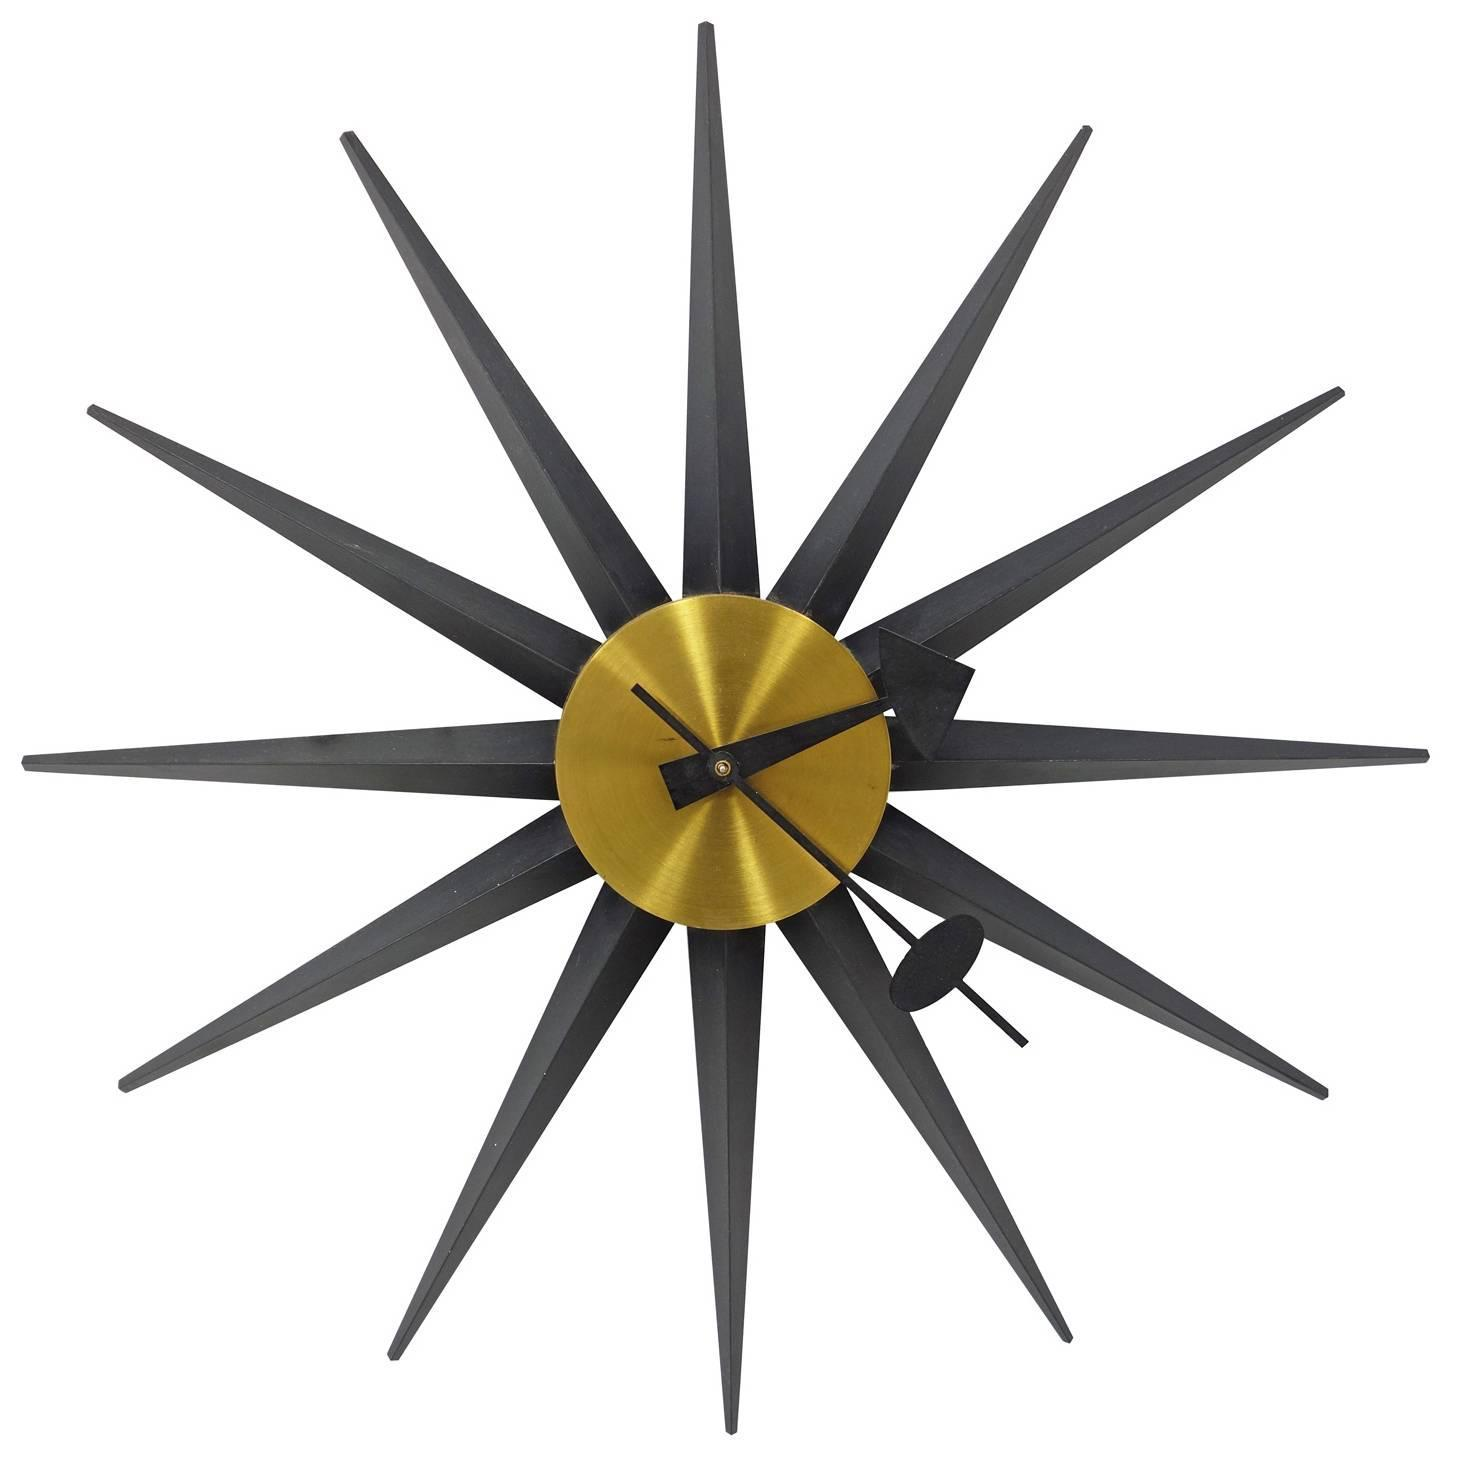 George nelson spike clock by howard miller at 1stdibs for Nelson wall clock